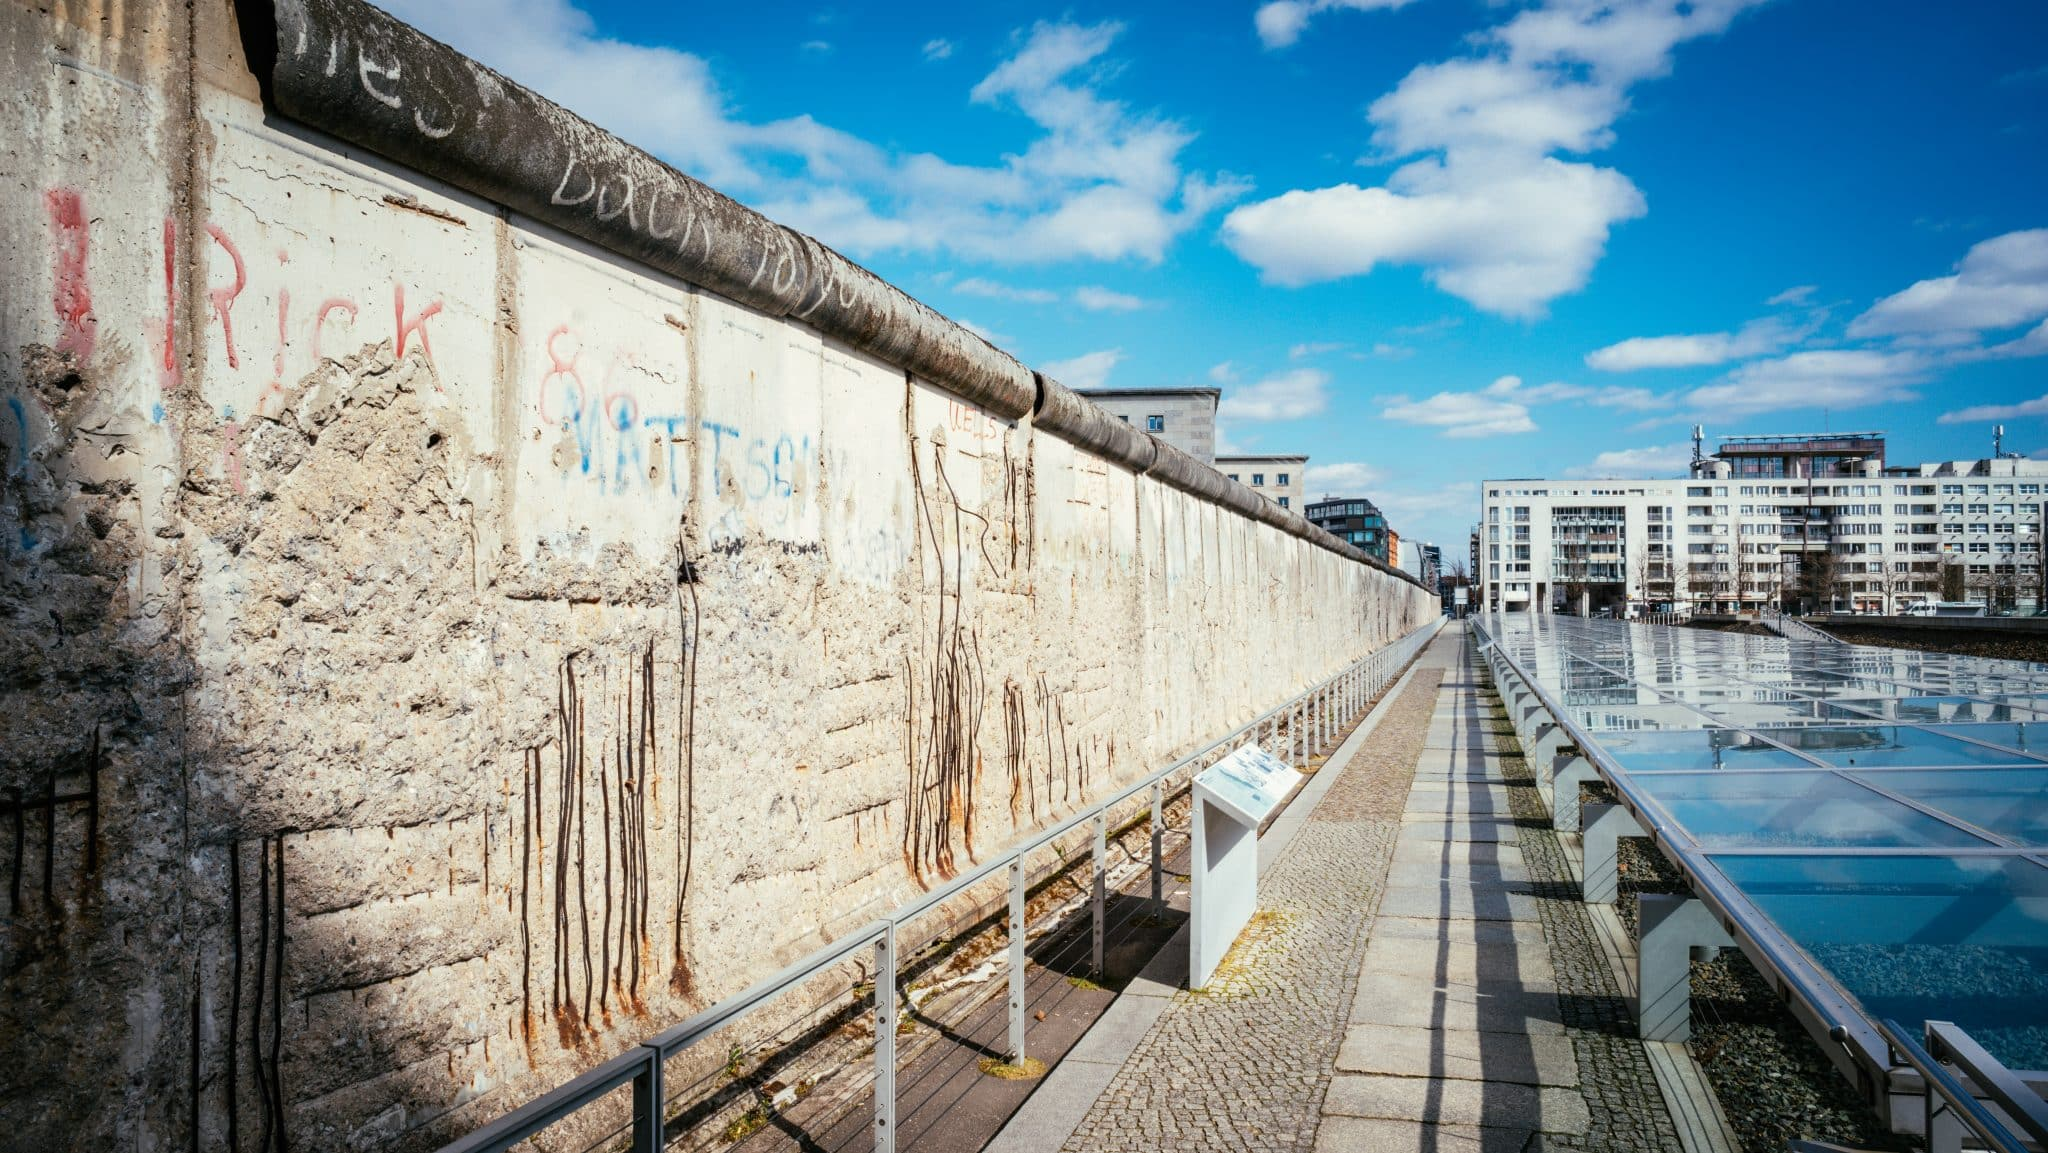 Berlin Wall at Topography of Terror